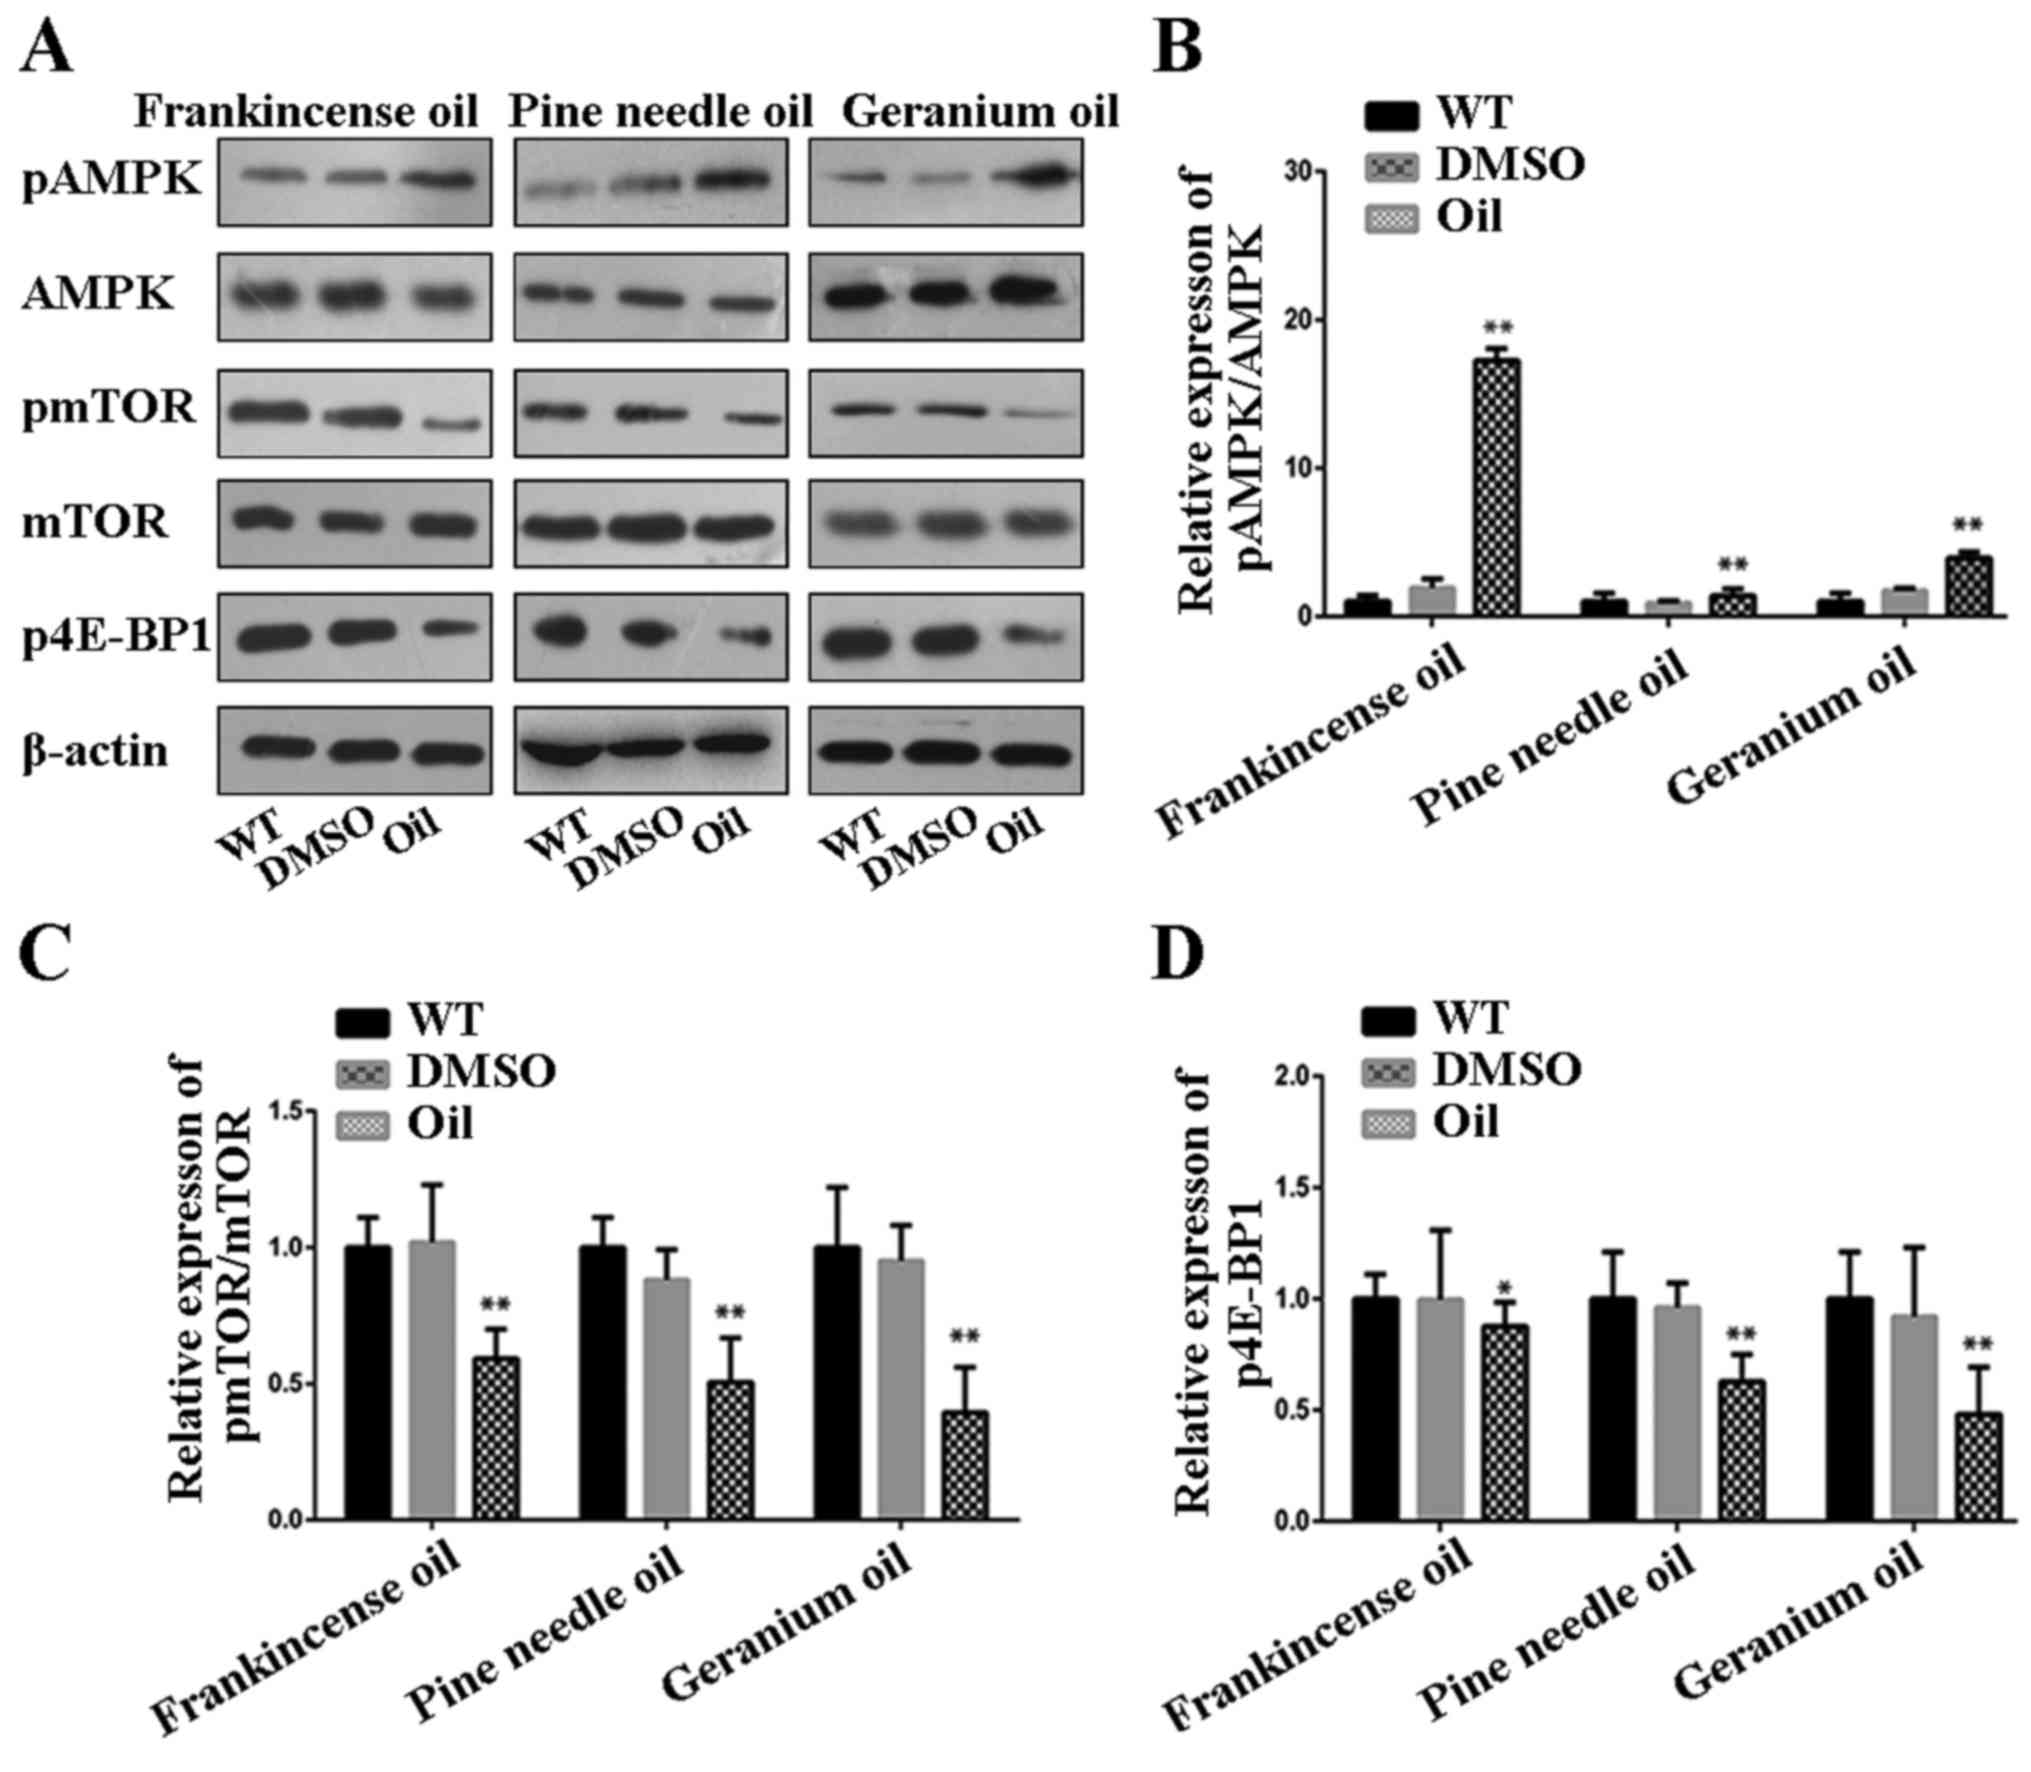 Frankincense Pine Needle And Geranium Essential Oils Suppress Tumor Progression Through The Regulation Of The Ampk Mtor Pathway In Breast Cancer